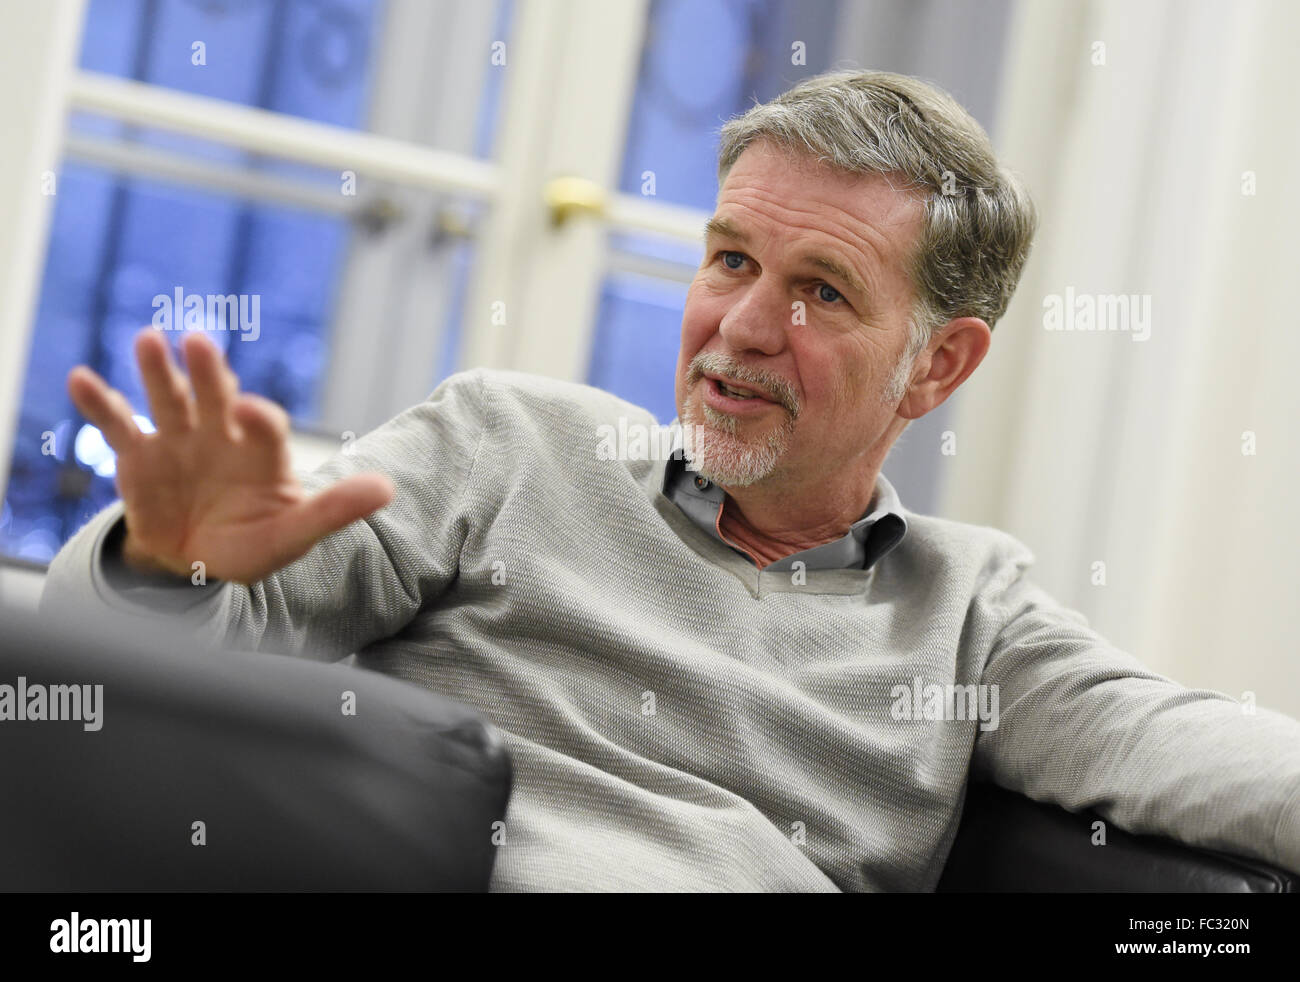 reed hastings head of the online video service netflix during an reed hastings head of the online video service netflix during an interview at the